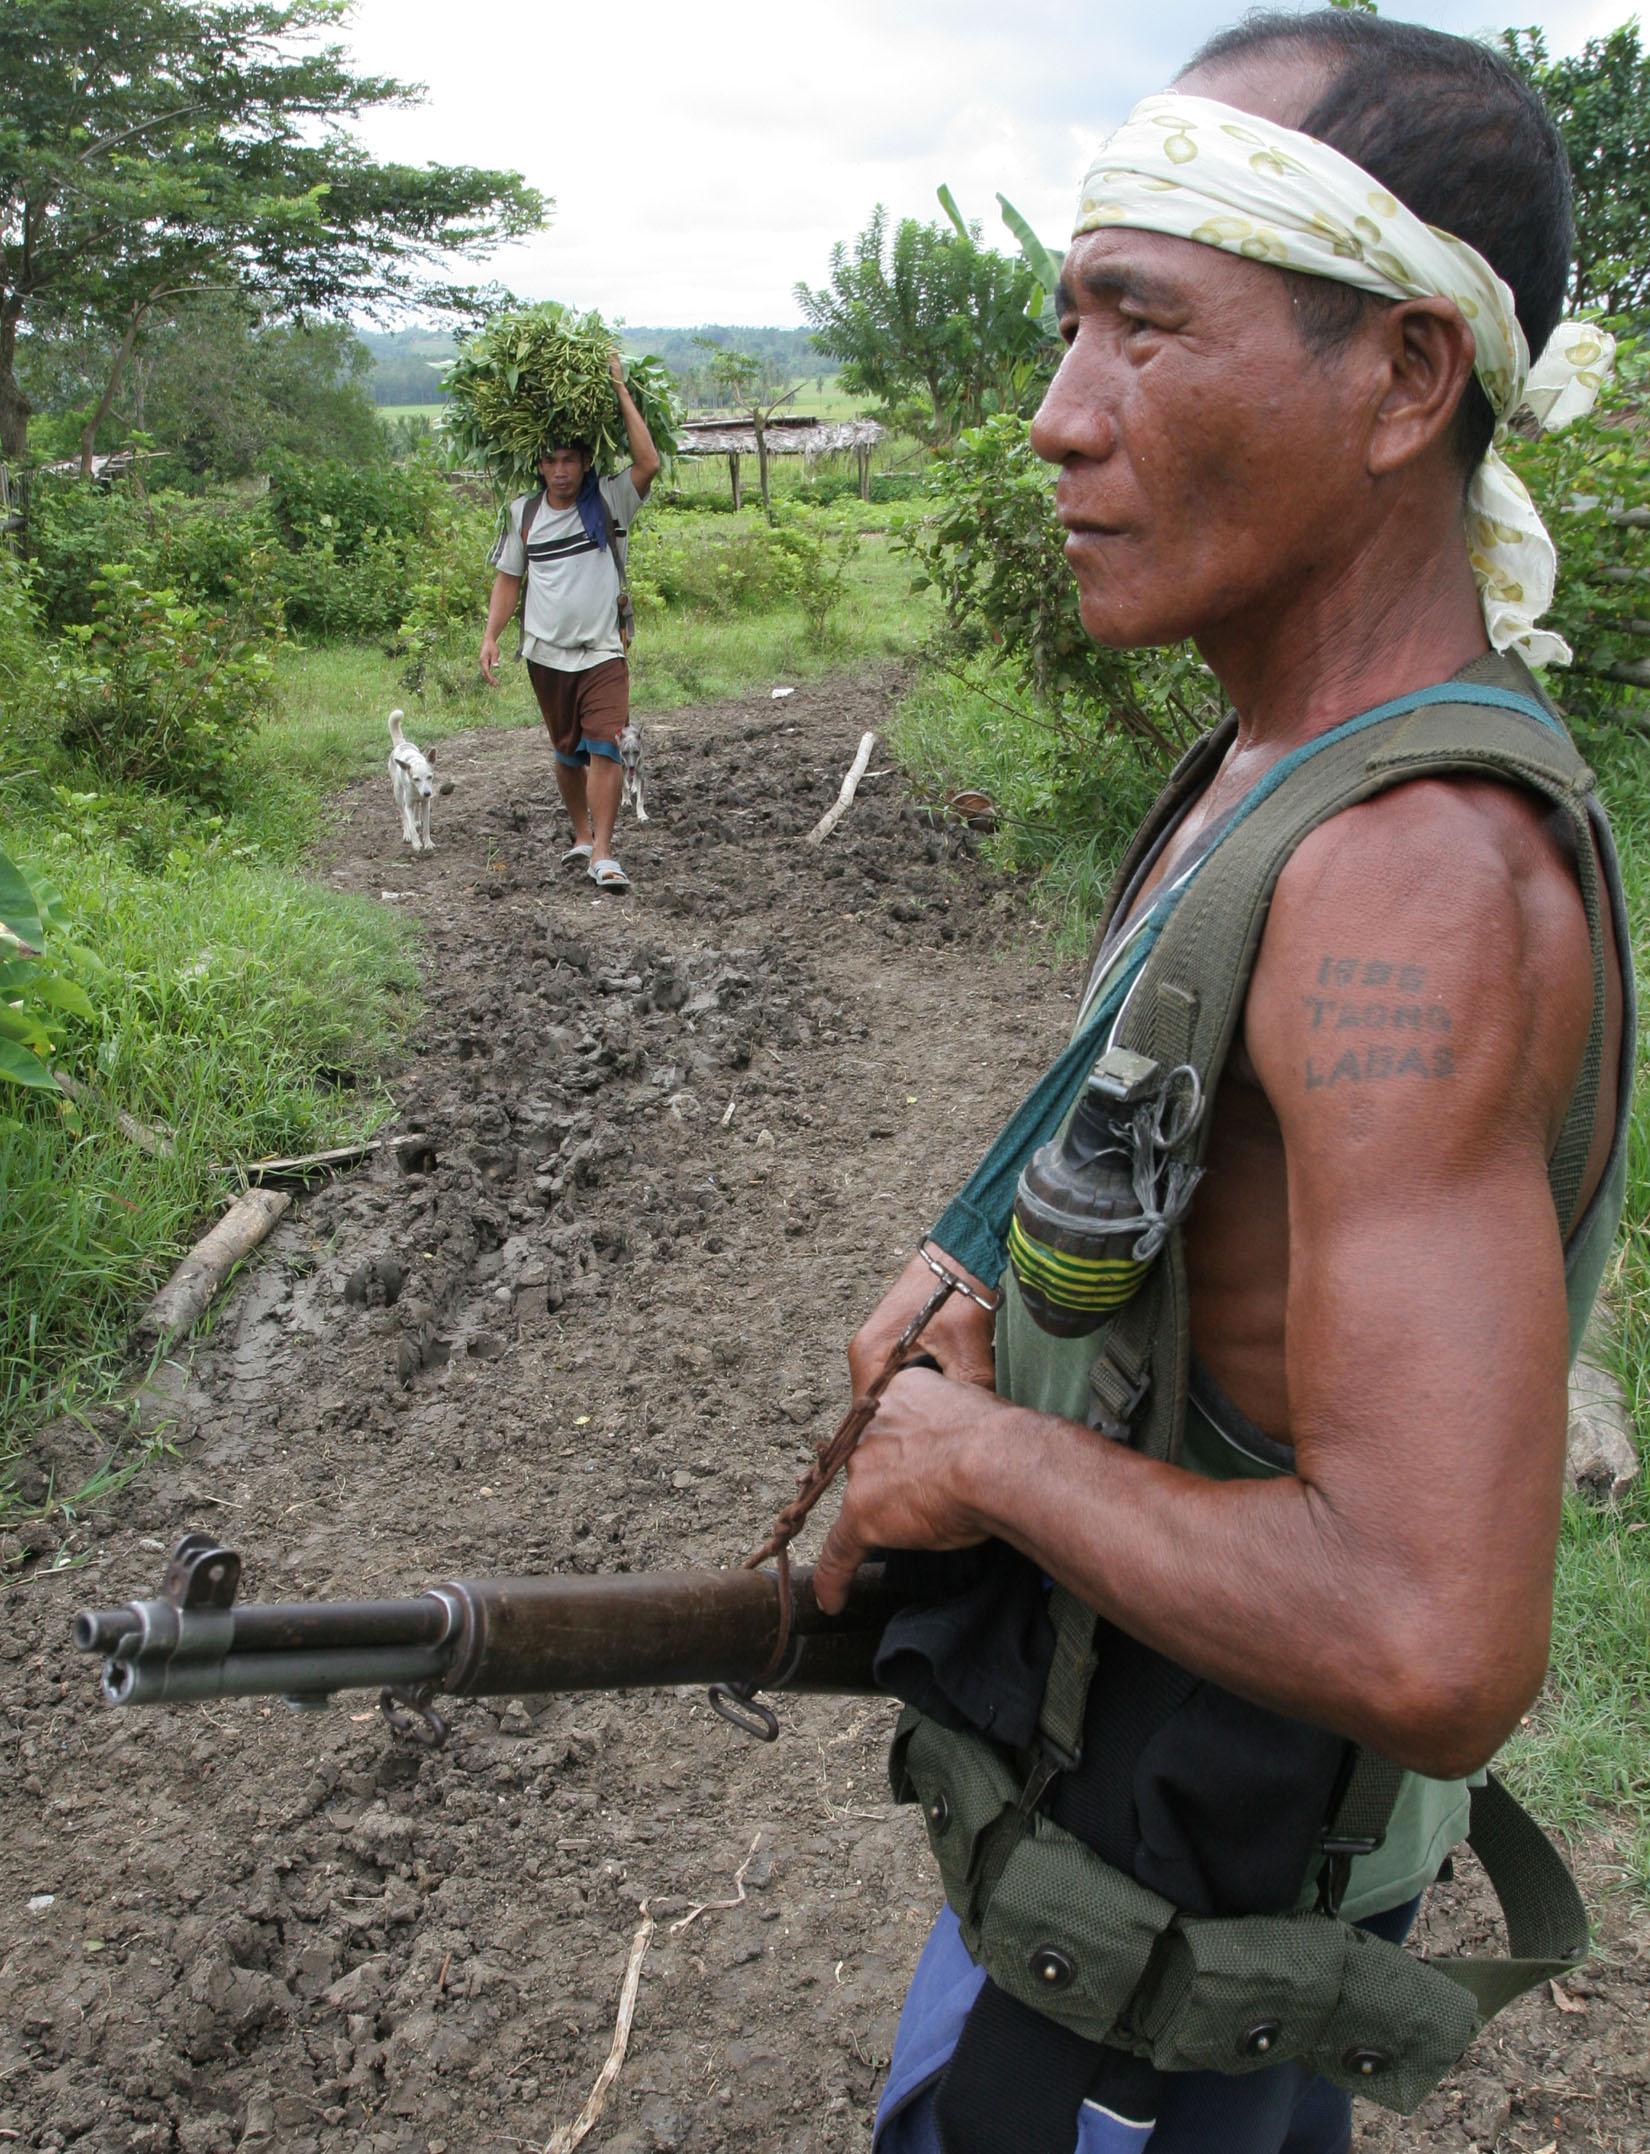 A member of a Christian militia group guards a roadside near a farming community in Mindanao. Civilians are increasingly arming themselves on the island to protect against raids by Muslim separatist rebels, in what officials warned could lead to more viol